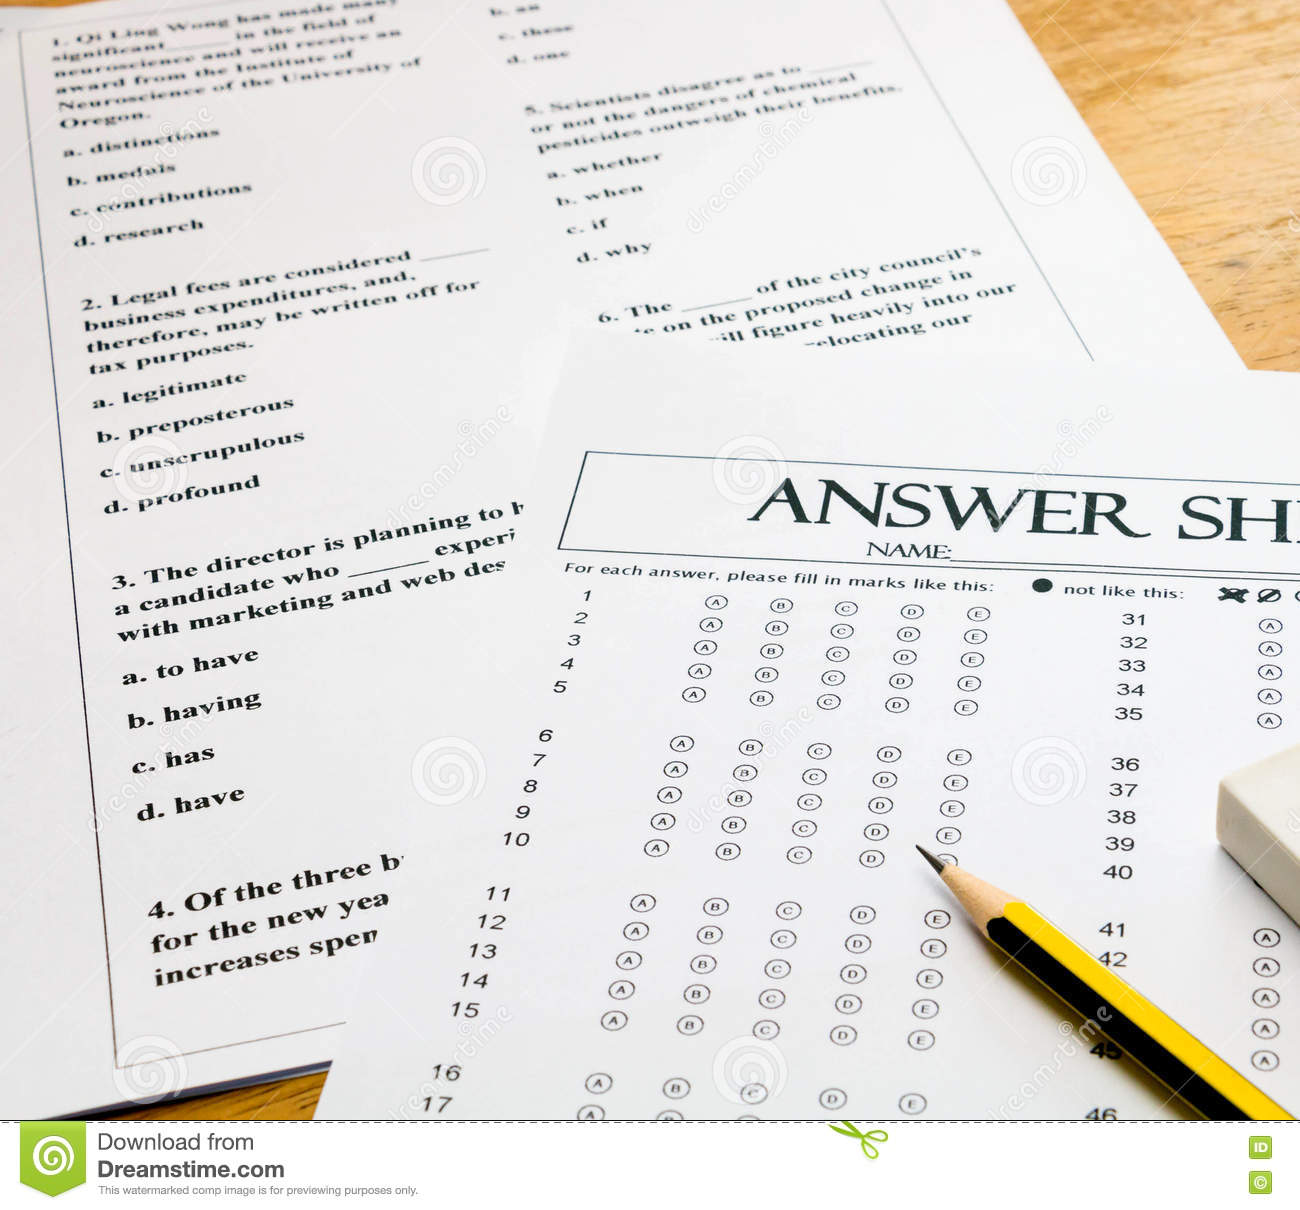 english question and answer sheet on table stock photo image of pencil question 71292536. Black Bedroom Furniture Sets. Home Design Ideas